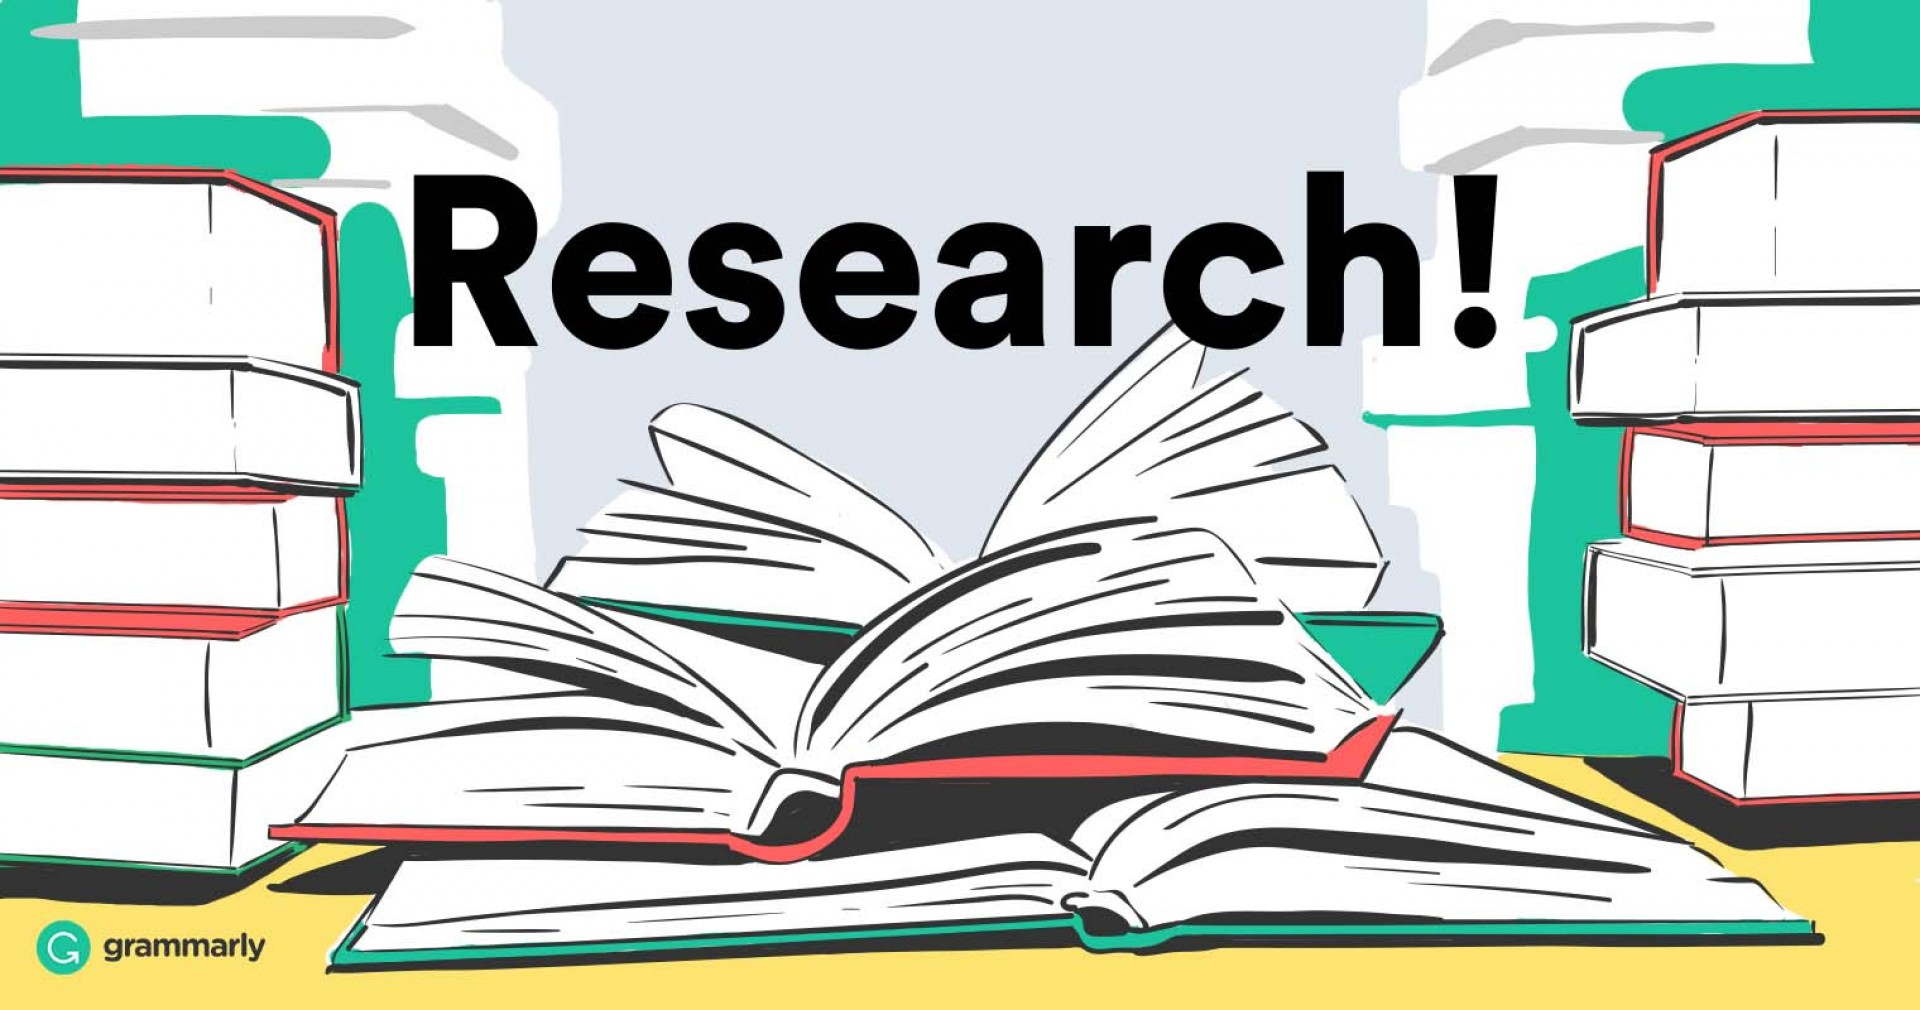 020 Best Research Paper Topics Ideas For Phenomenal 2017 1920